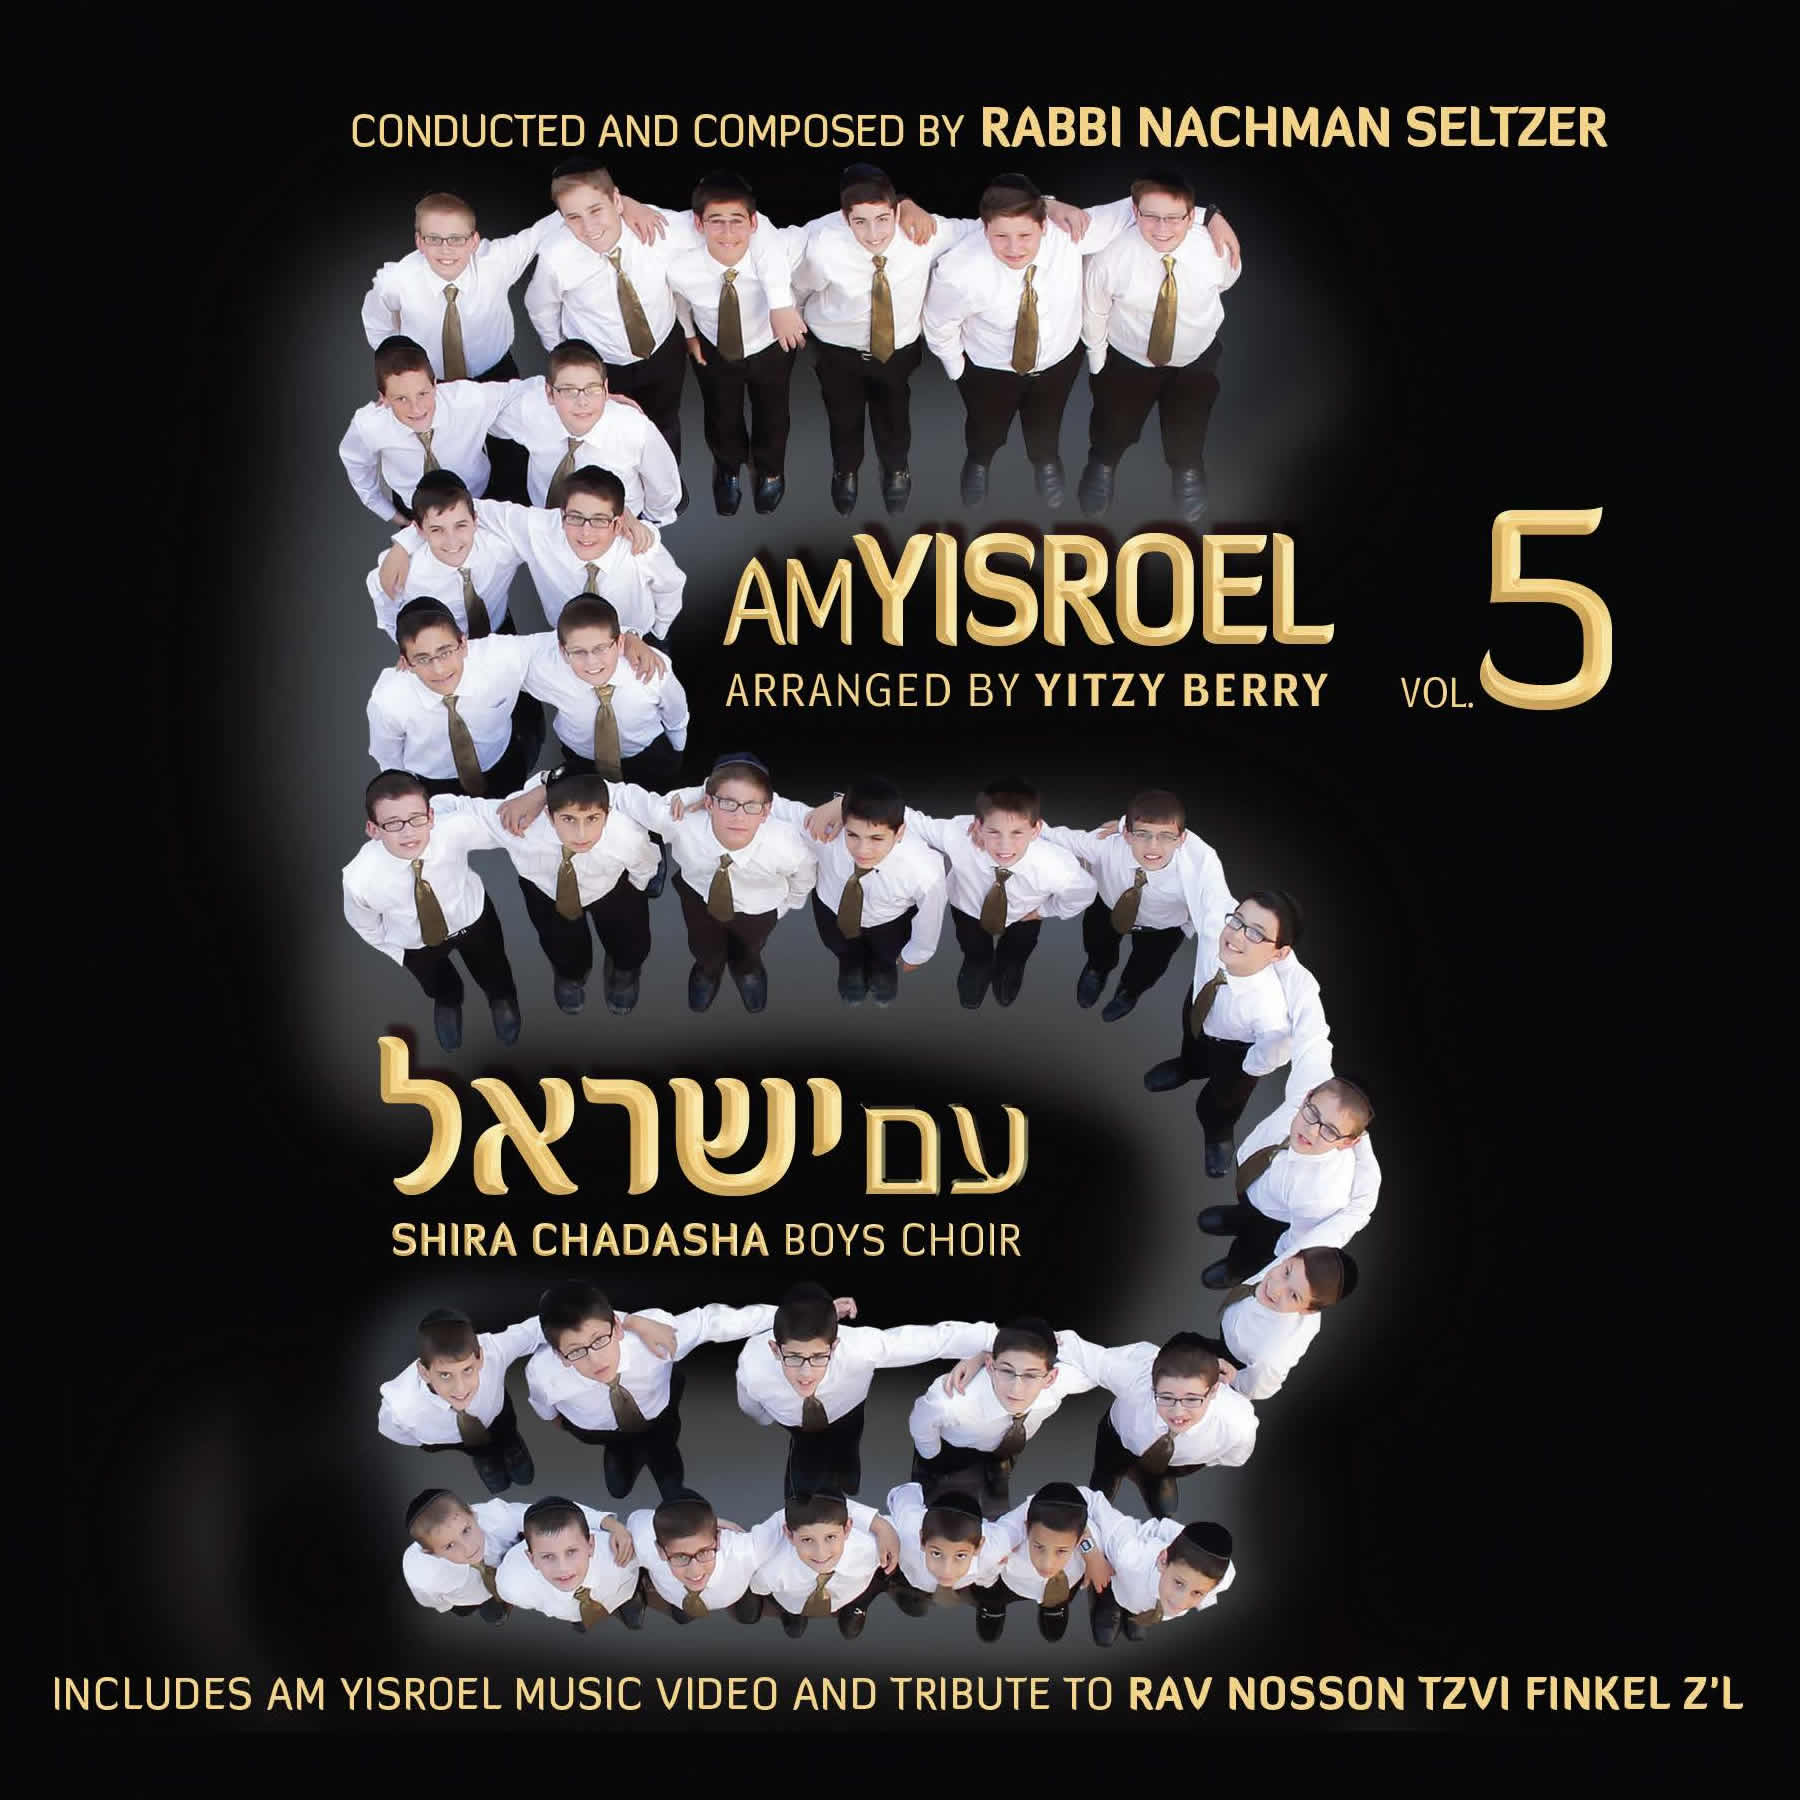 Am Yisroel